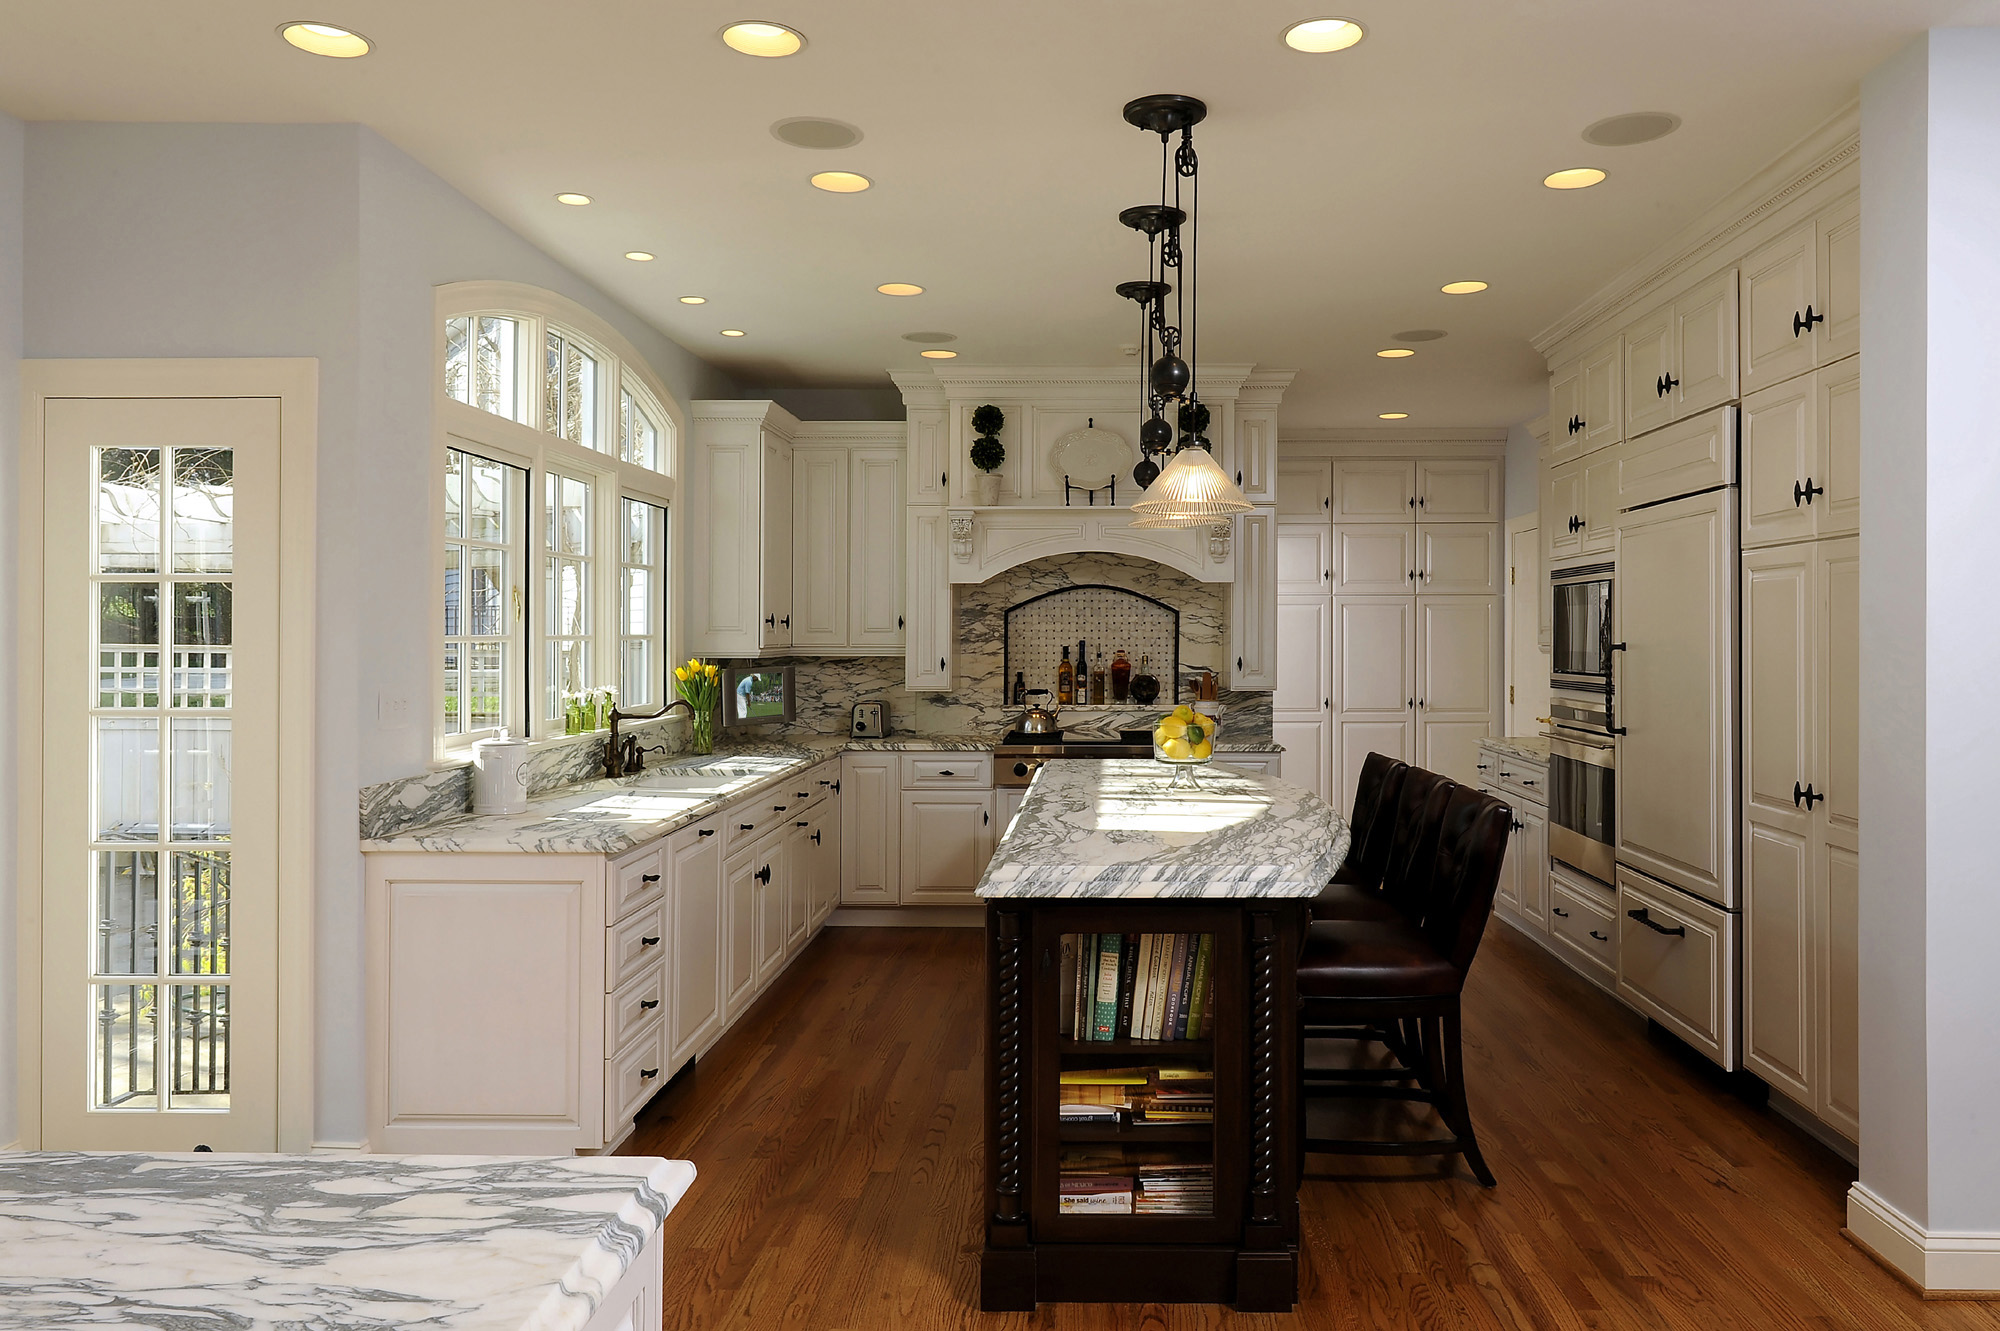 Kitchen And Master Bath Renovation In McLean, VA